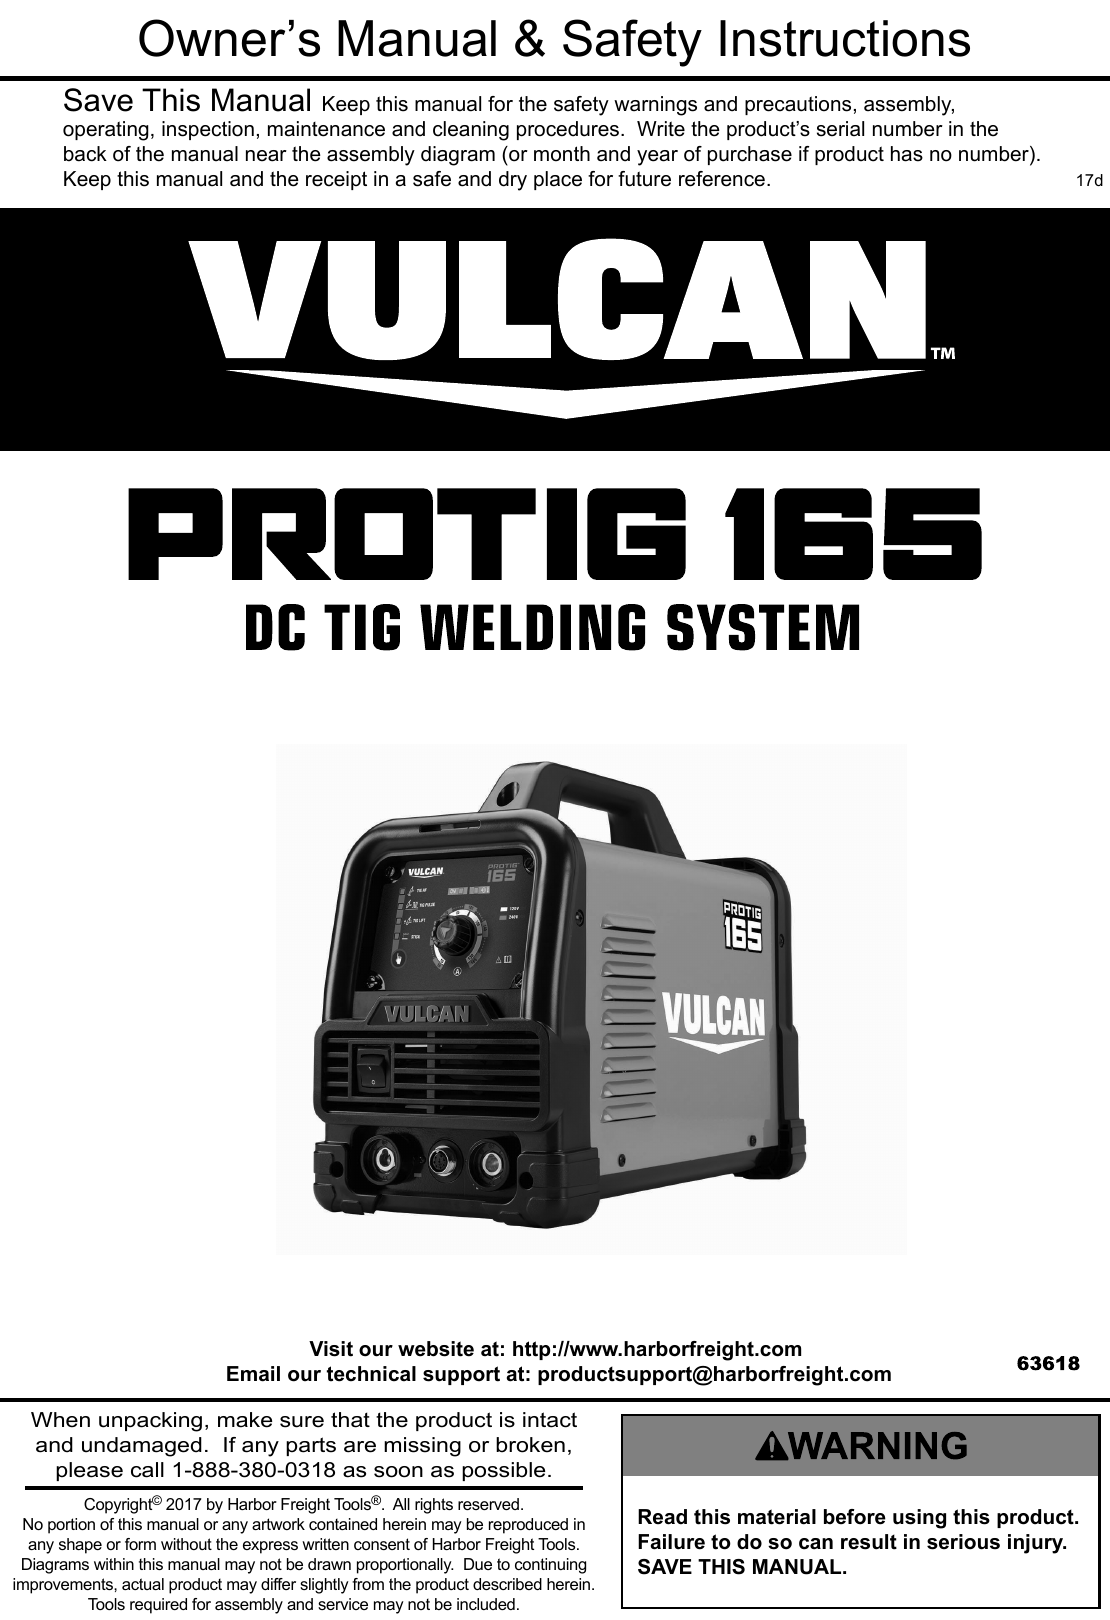 Manual For The 63618 Pro Tig 165 Welder With 120 240 Volt Input How To Read A Welding Diagram